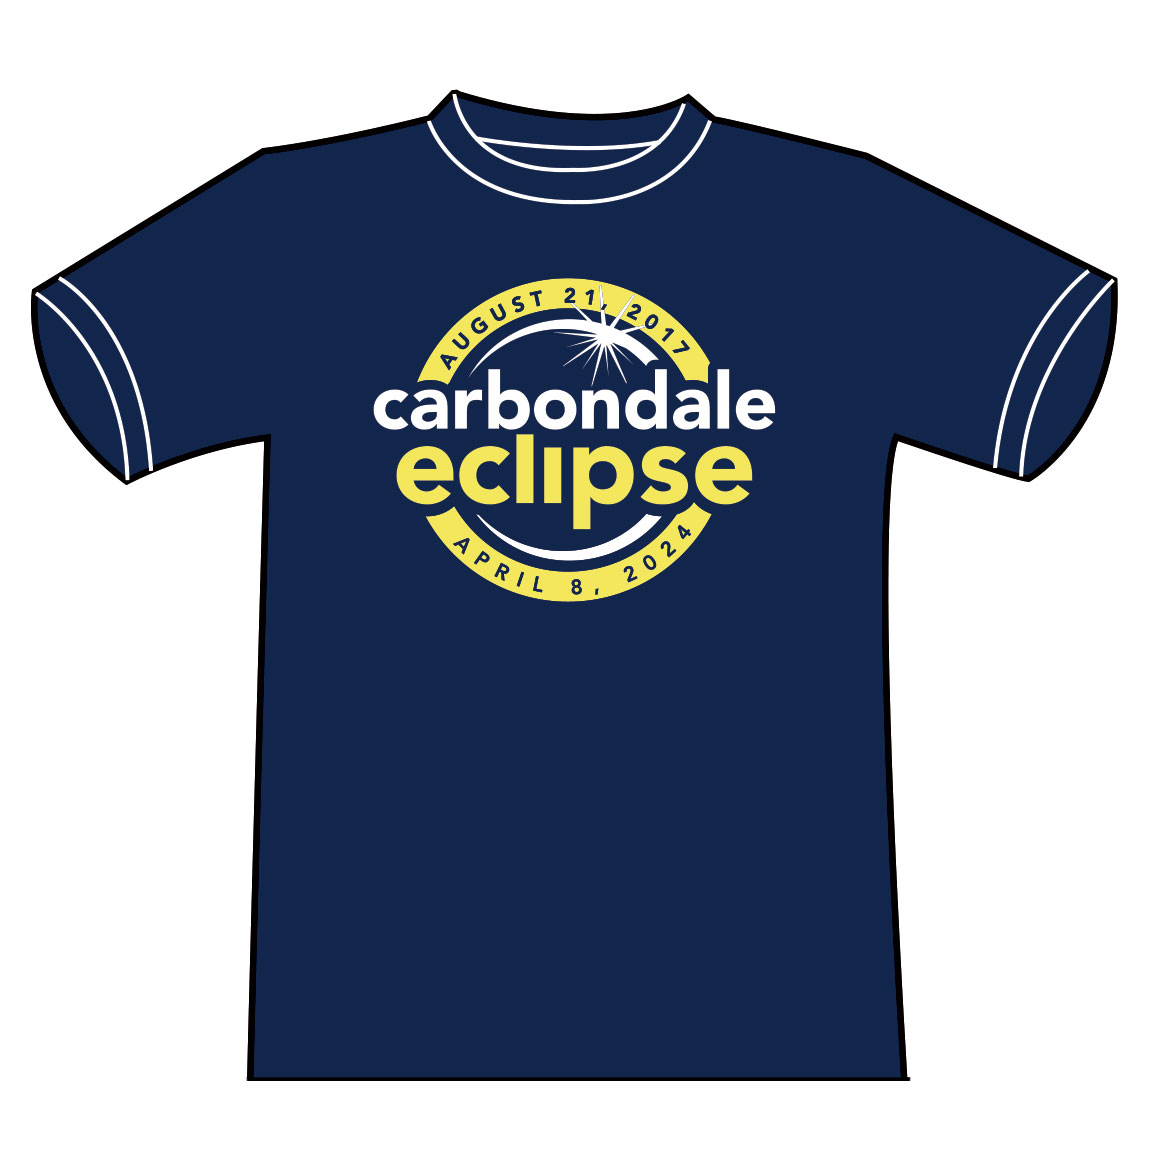 Image for the CARBONDALE ECLIPSE CROSSROADS  WITH MAP ON BACK - NAVY T-SHIRT product